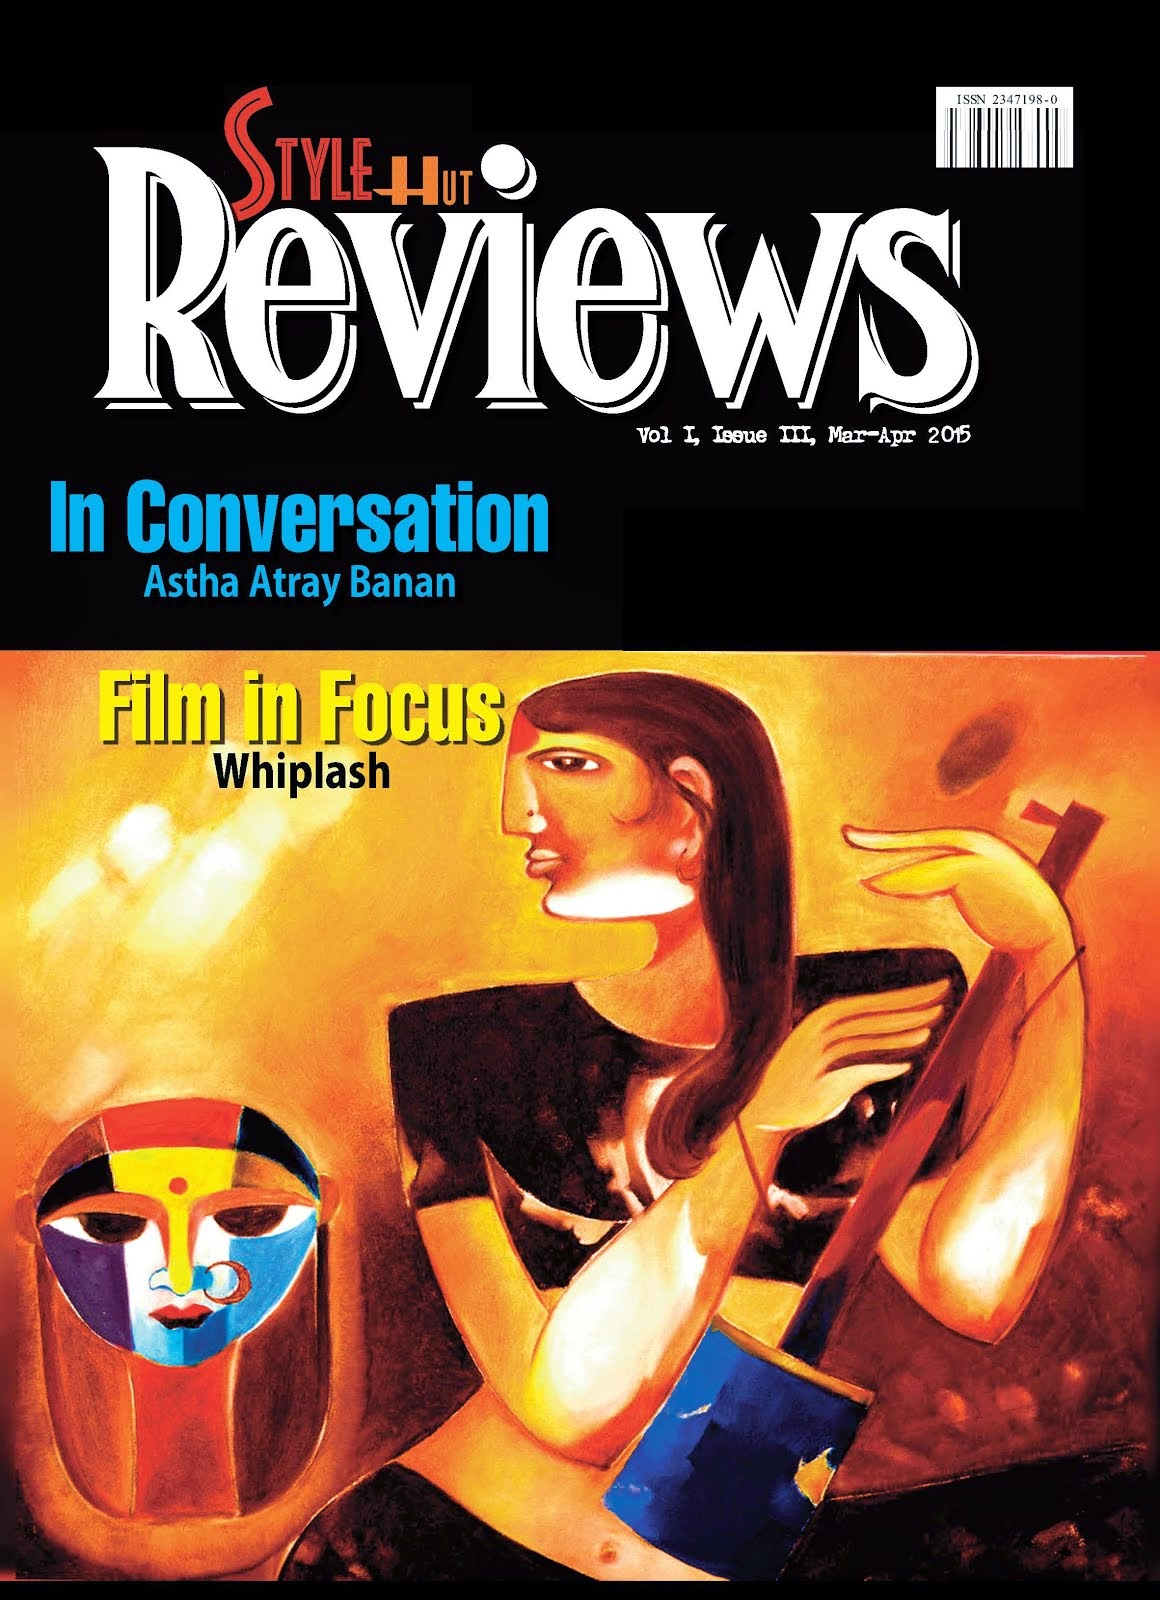 Reviews, Vol 1, Issue 3